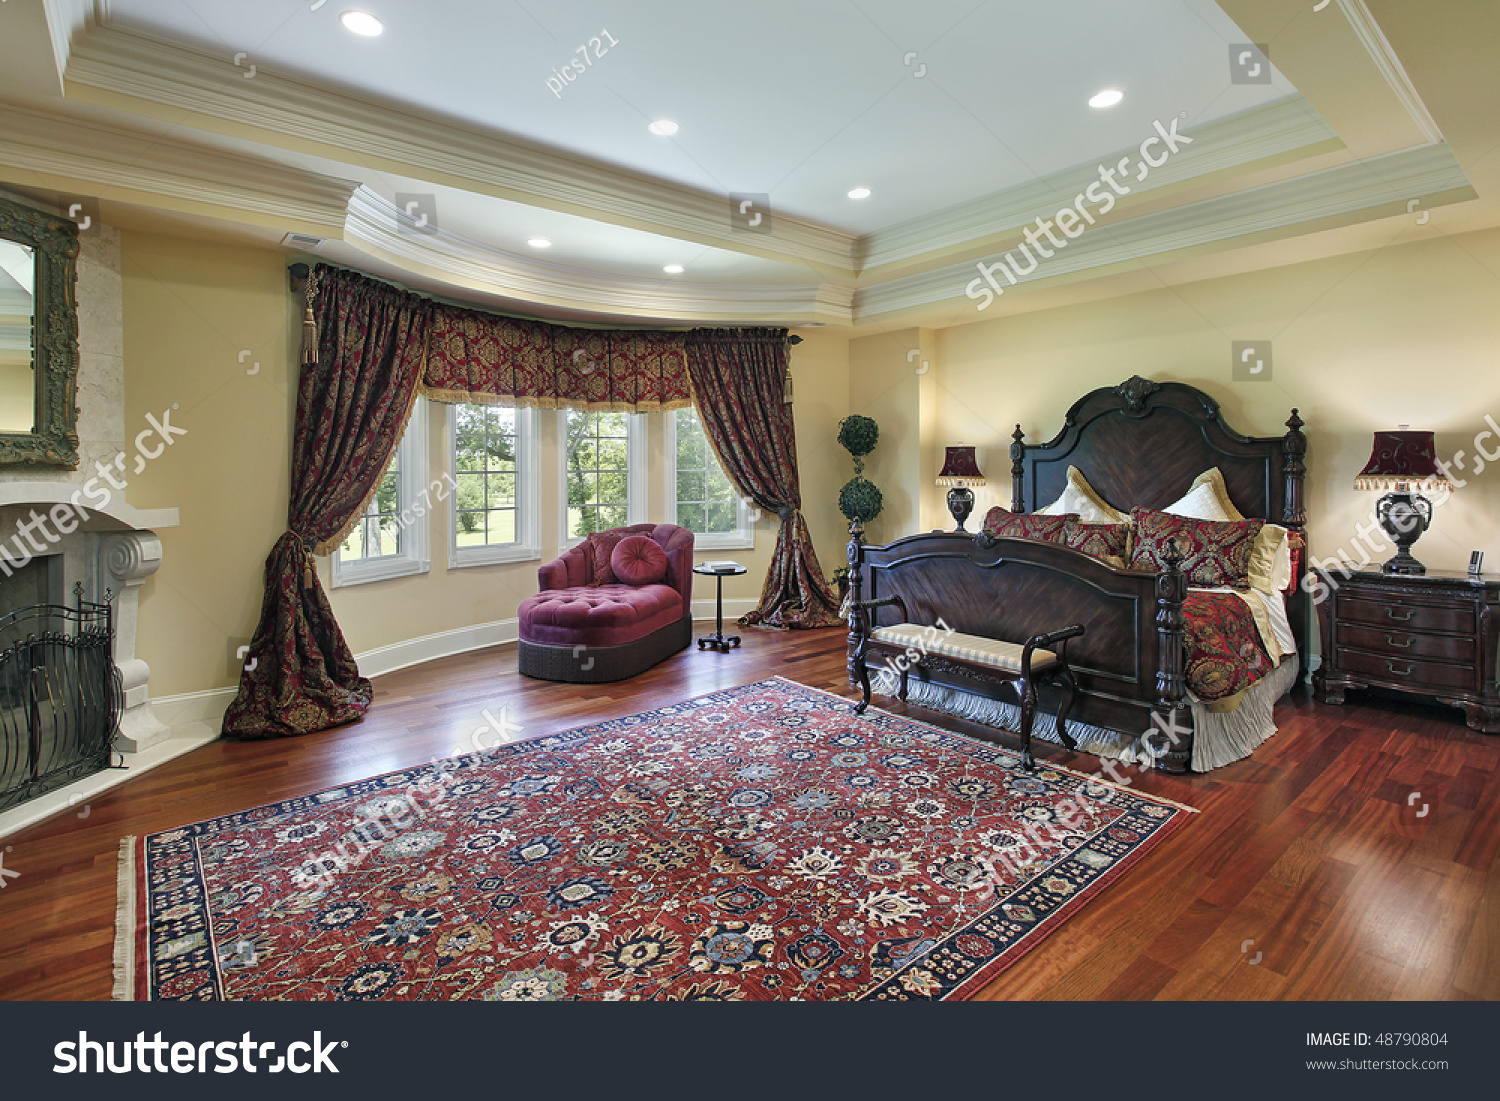 Master Bedroom Fireplace Luxury Master Bedroom With Recessed Ceiling And Fireplace Stock